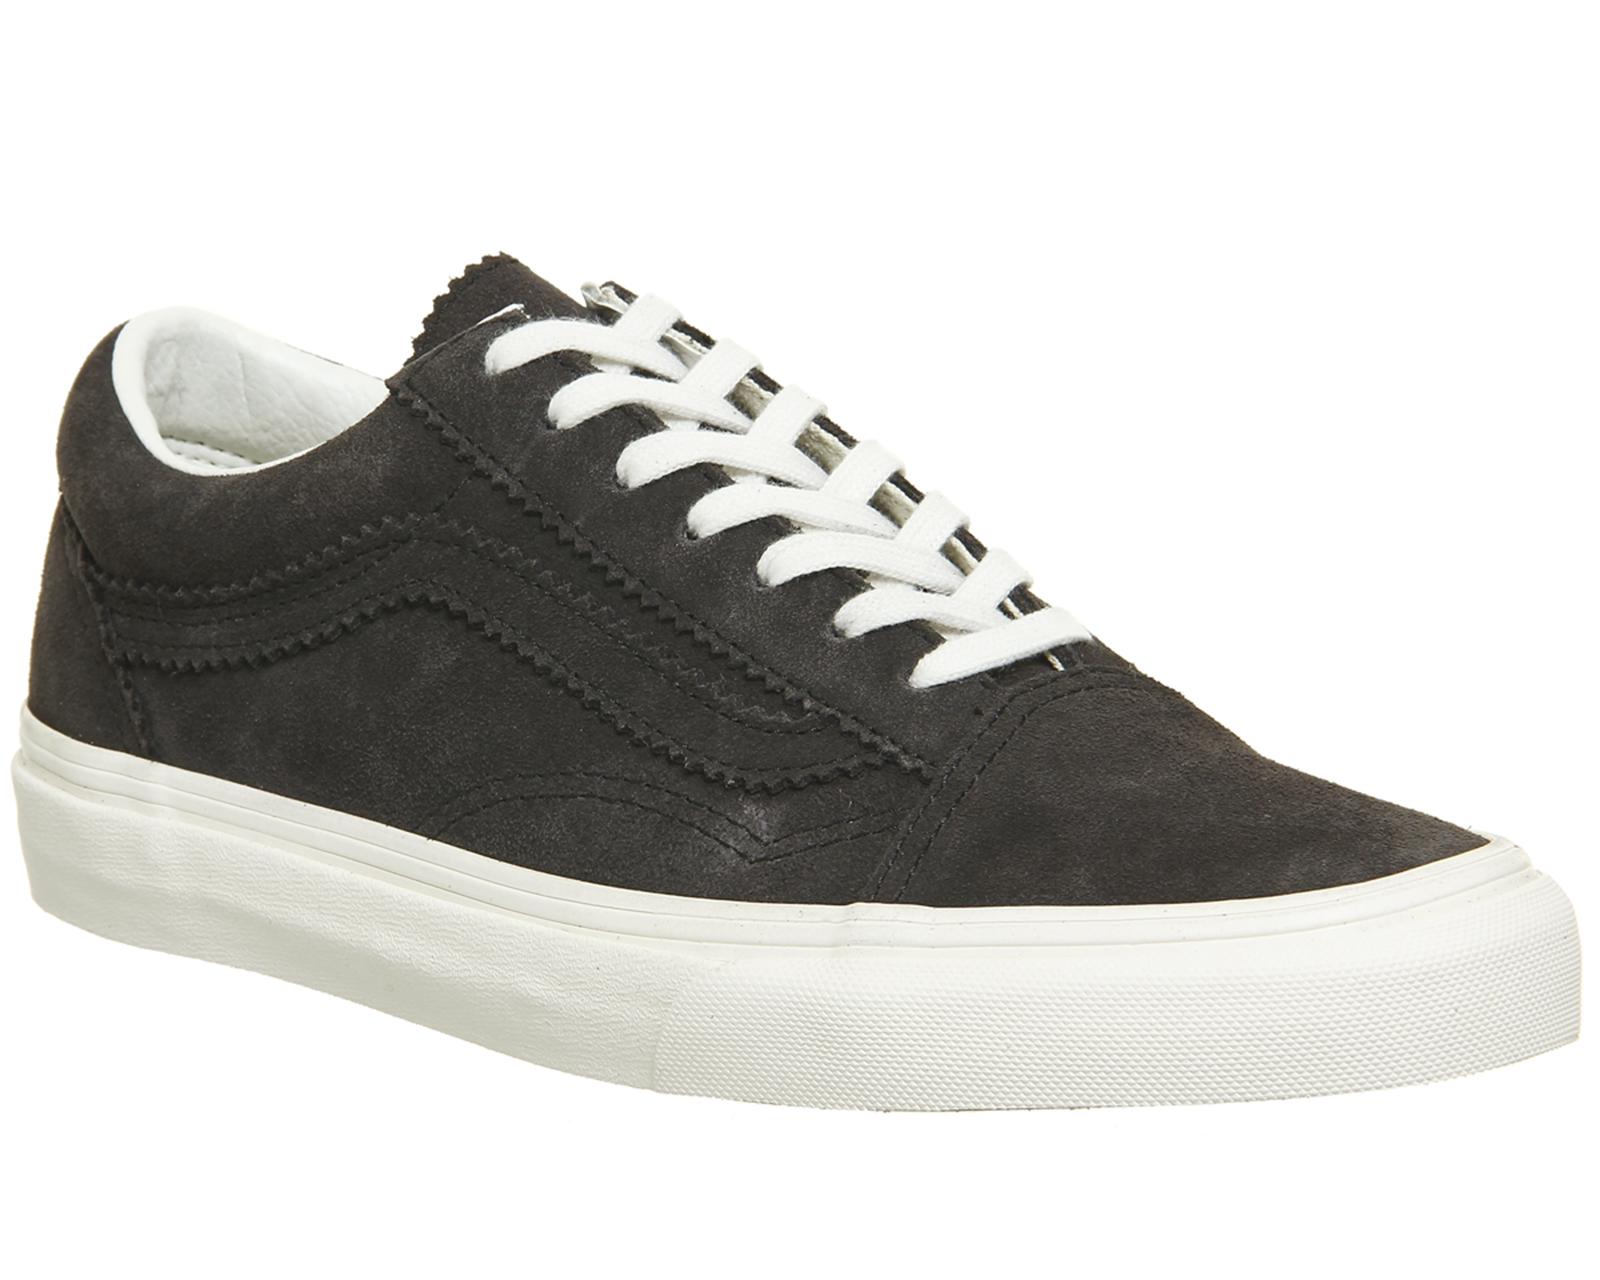 Sentinel Mens Vans Old Skool Trainers BLANC LICORICE Trainers Shoes 40a31665b